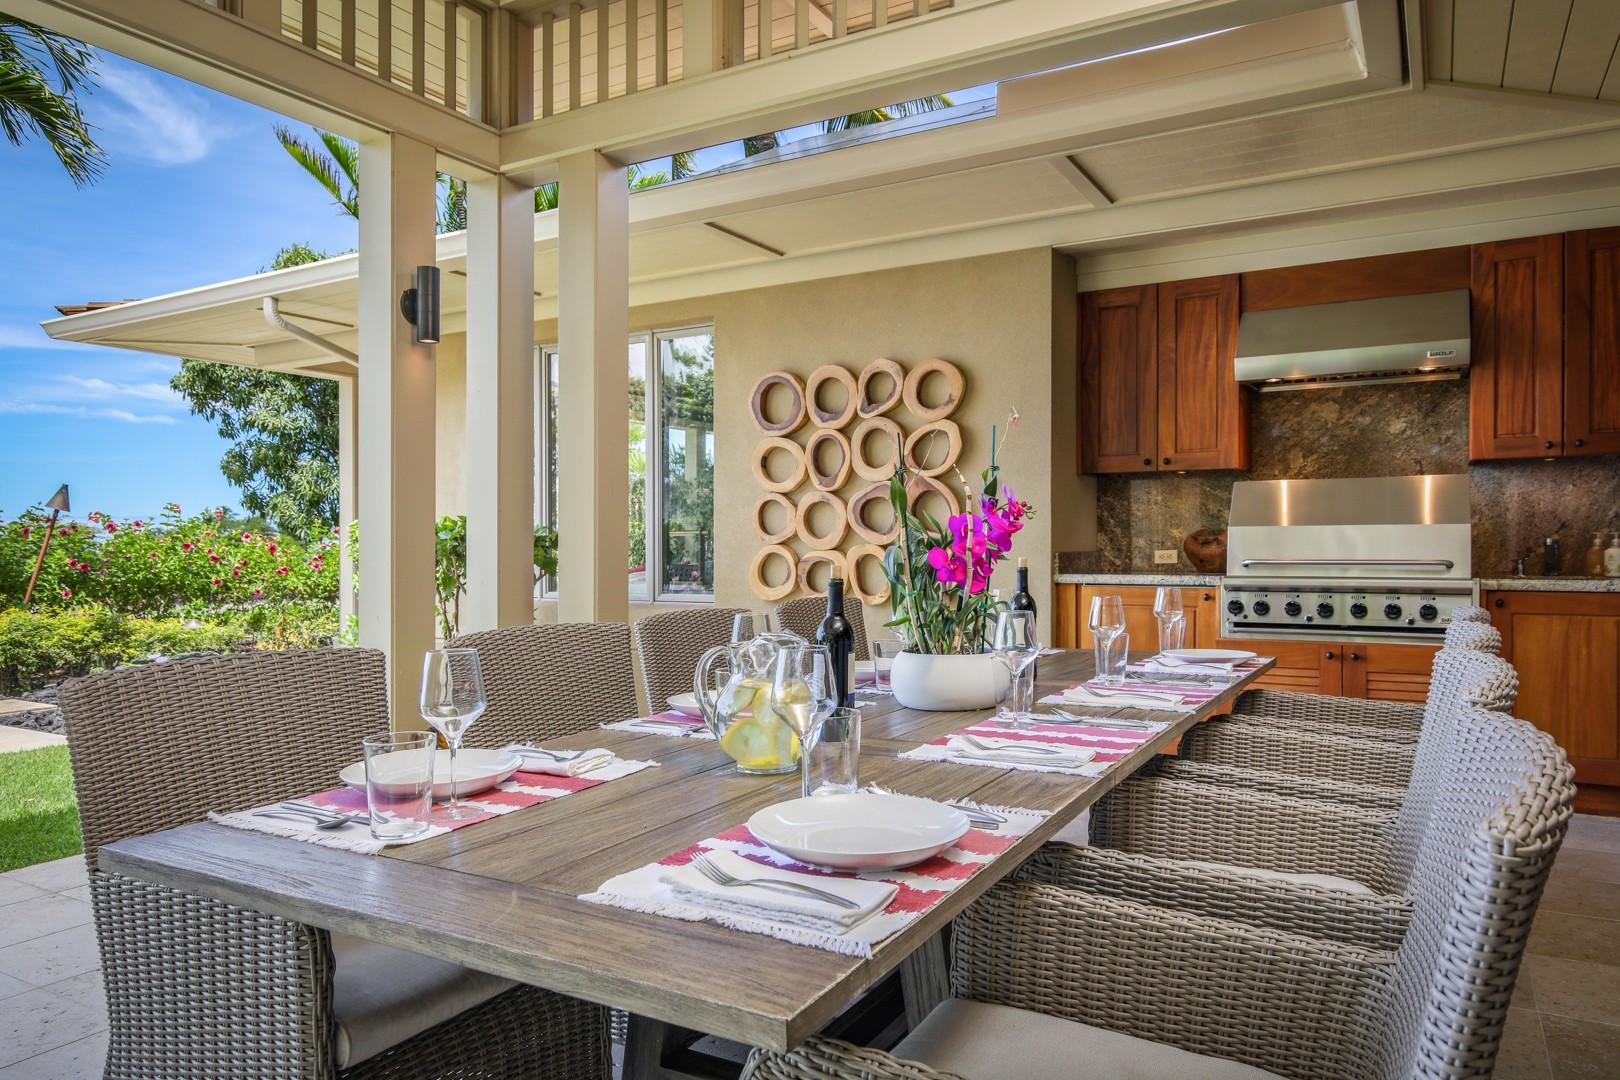 Stylish and modern al fresco dining with ocean views, BBQ grill.